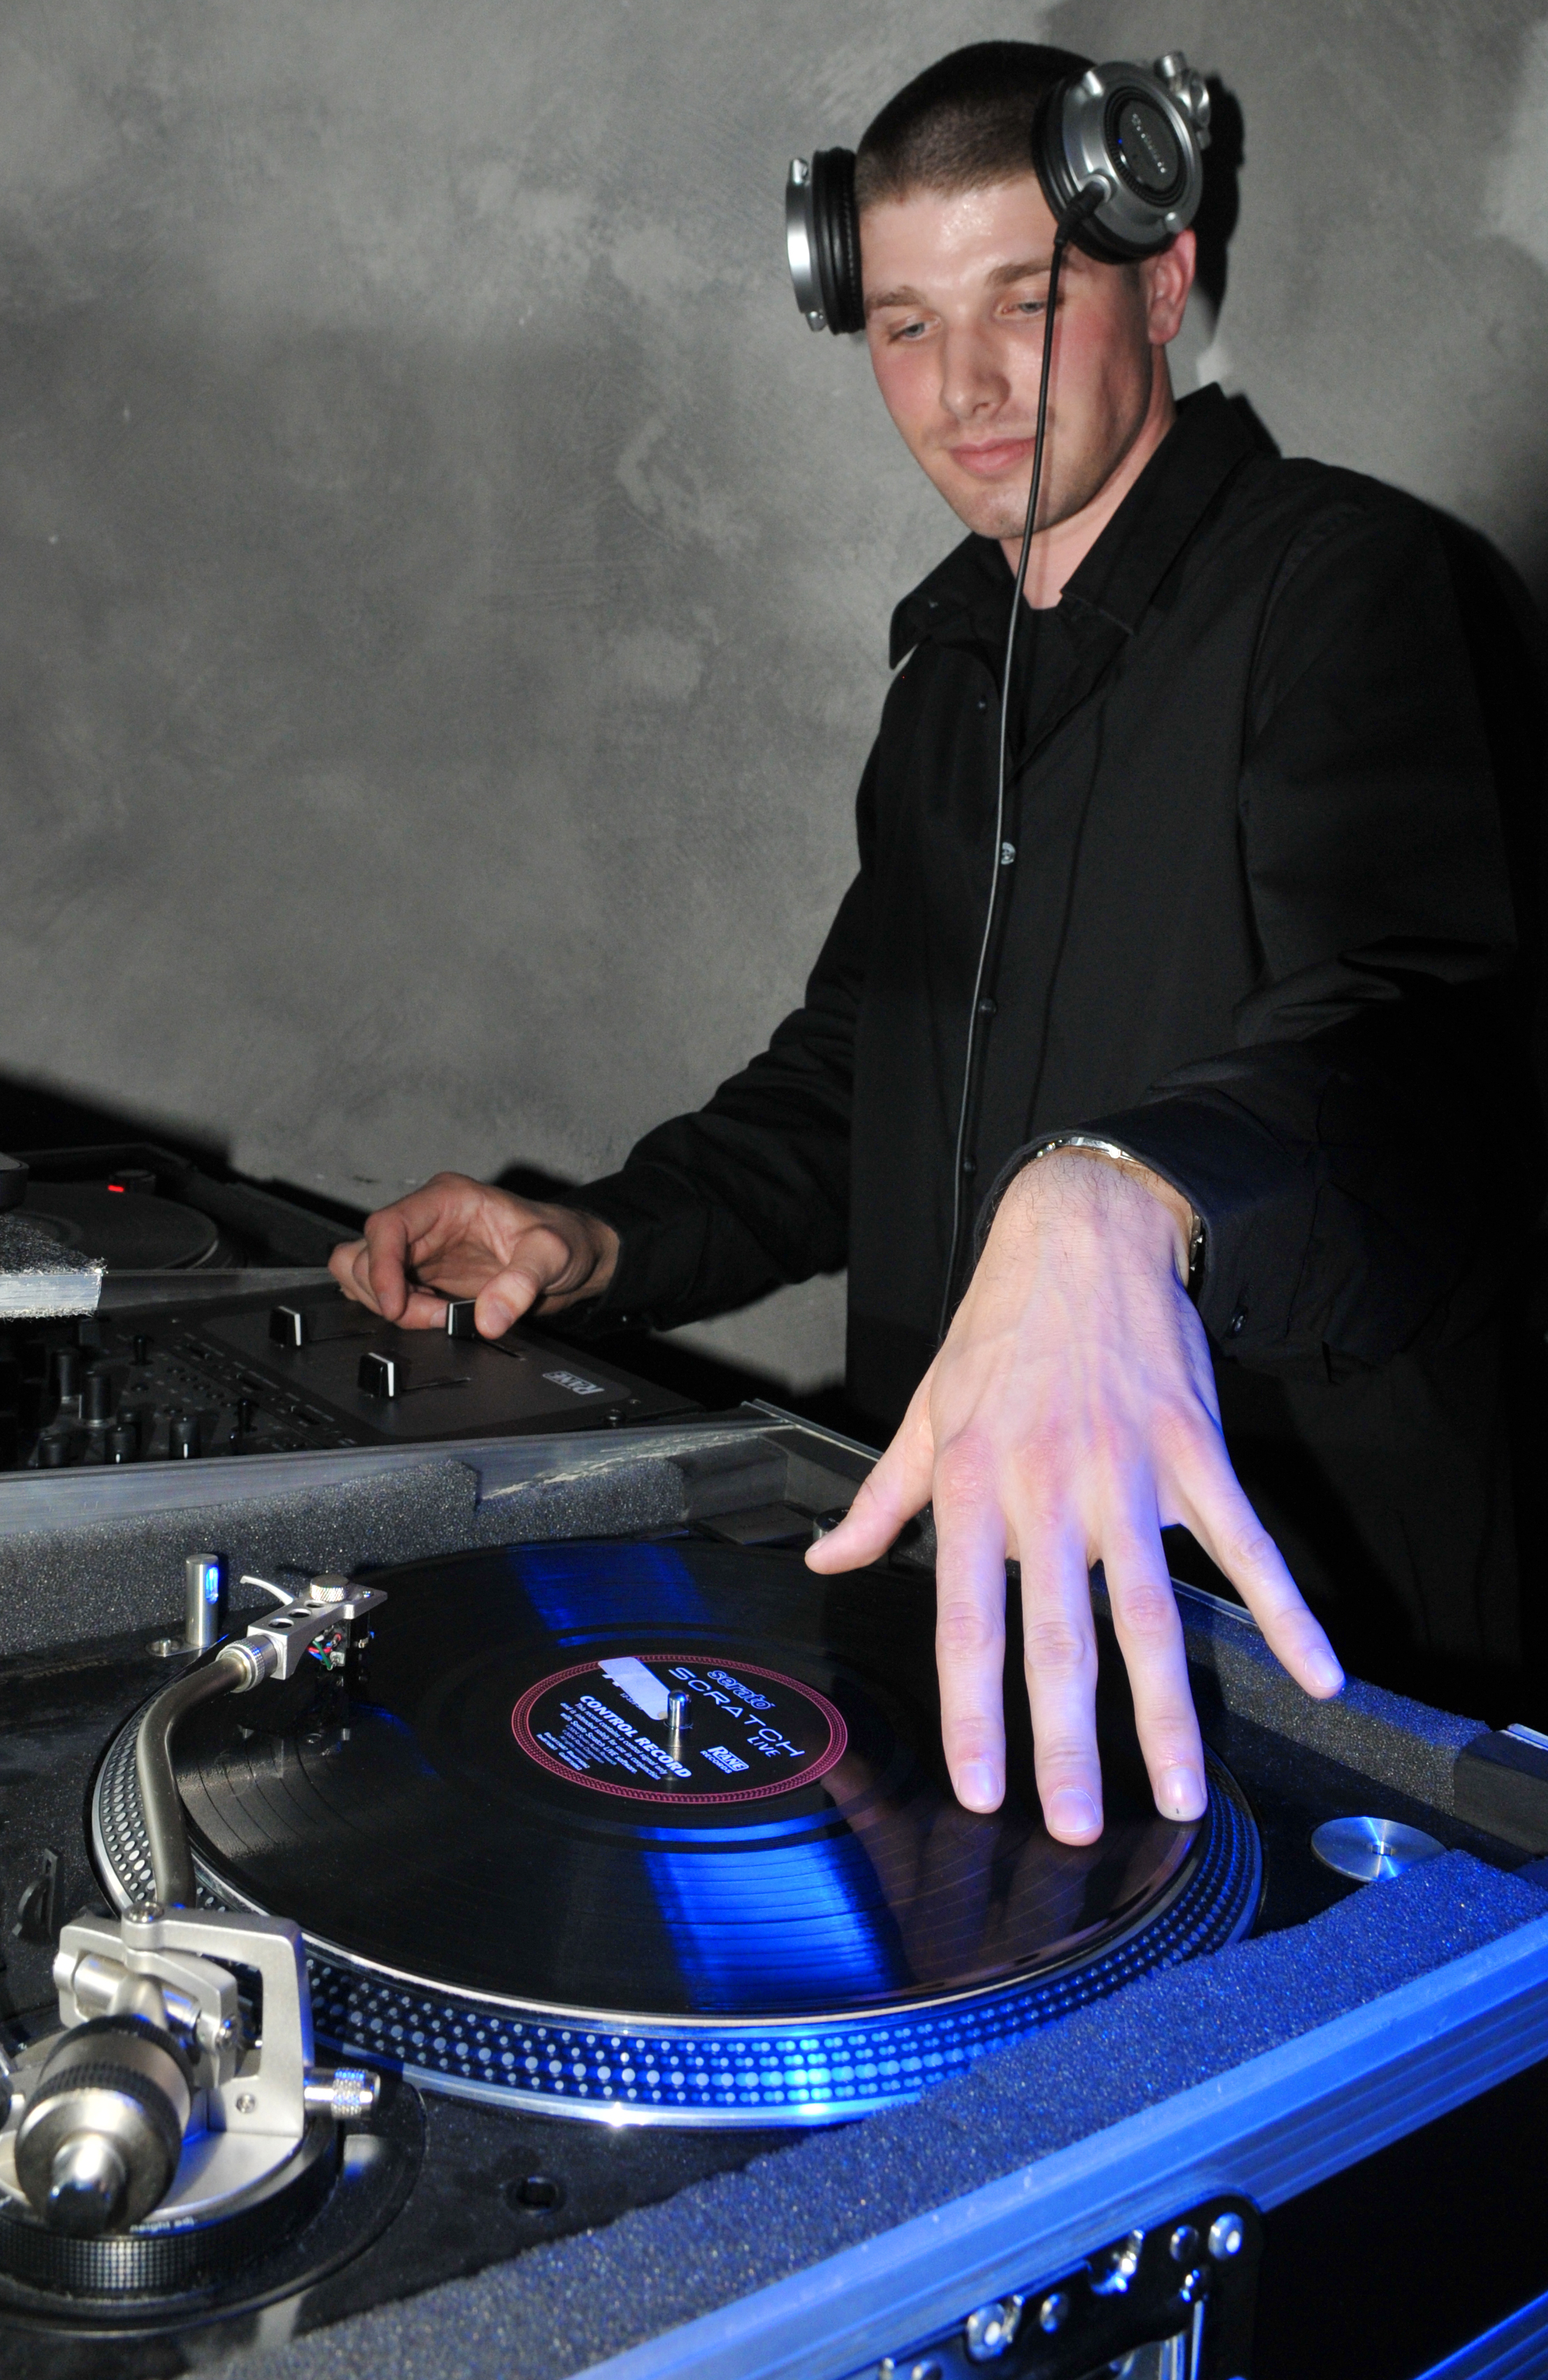 disc jockeying essay Disc jockey services serving all of arizona  but informative essay that i wrote title,  disc jockeying is not my main profession so i wouldn't call myself a.